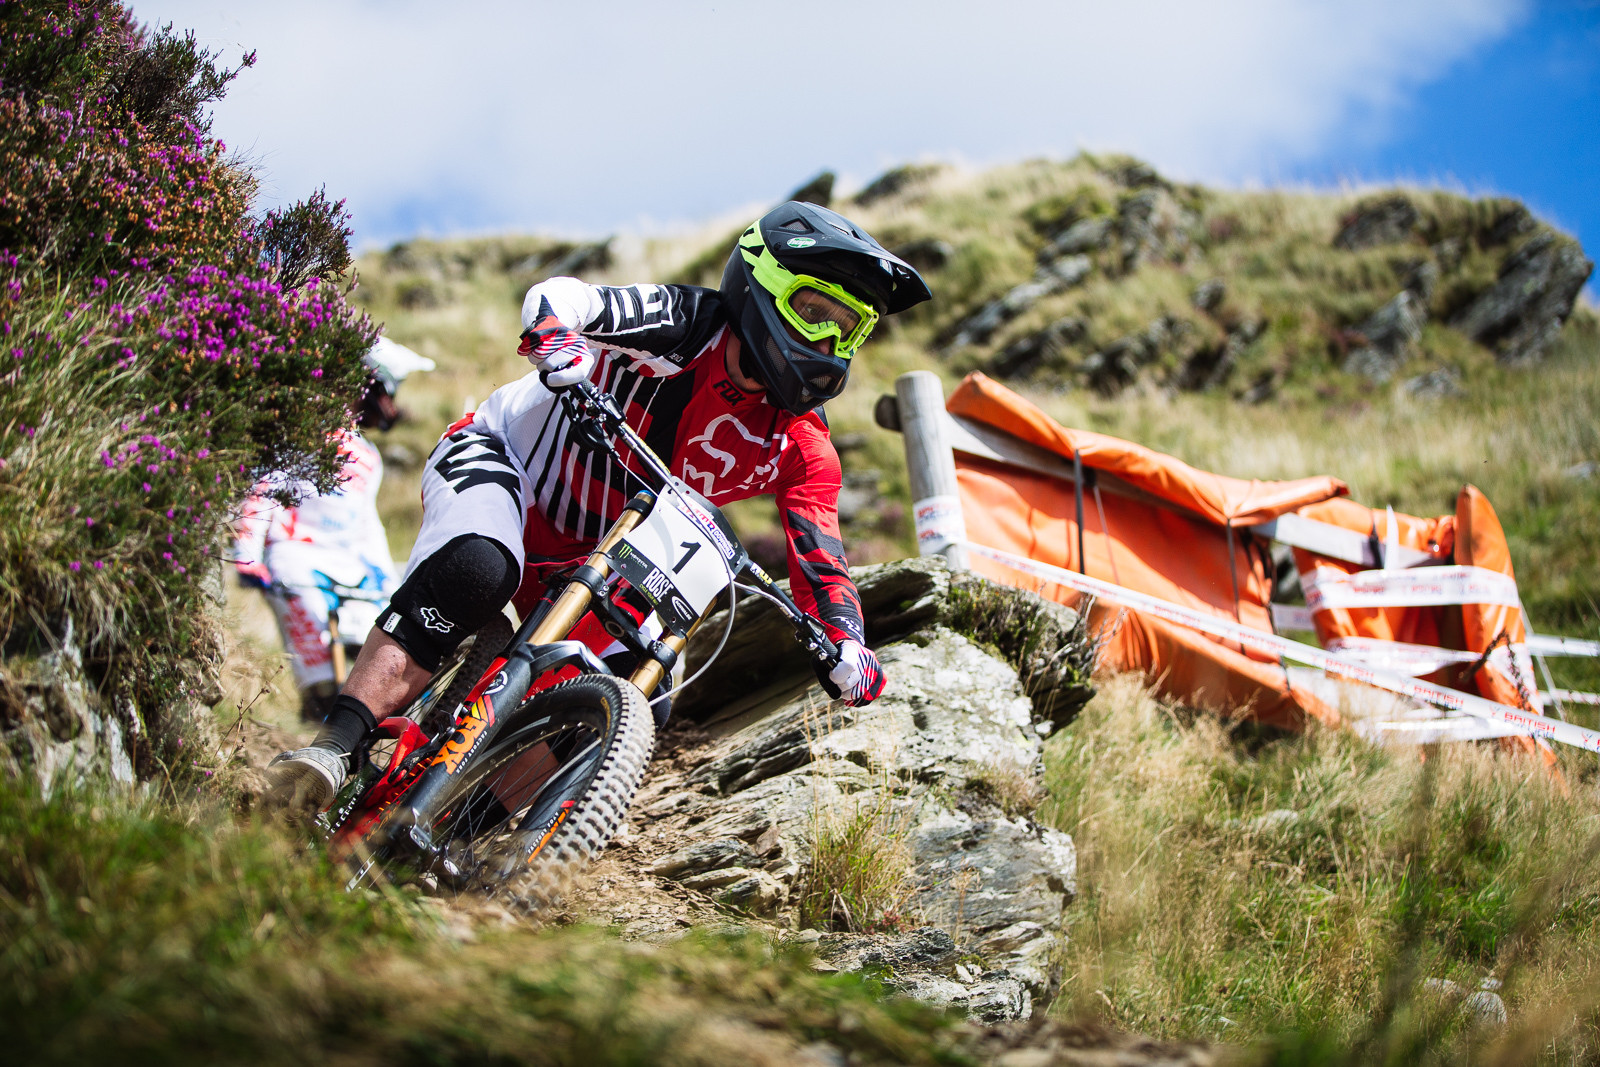 Marc Beaumont, 3rd Place, 2015 British Downhill Series Finals - 2015 British Downhill Series Finals - Mountain Biking Pictures - Vital MTB